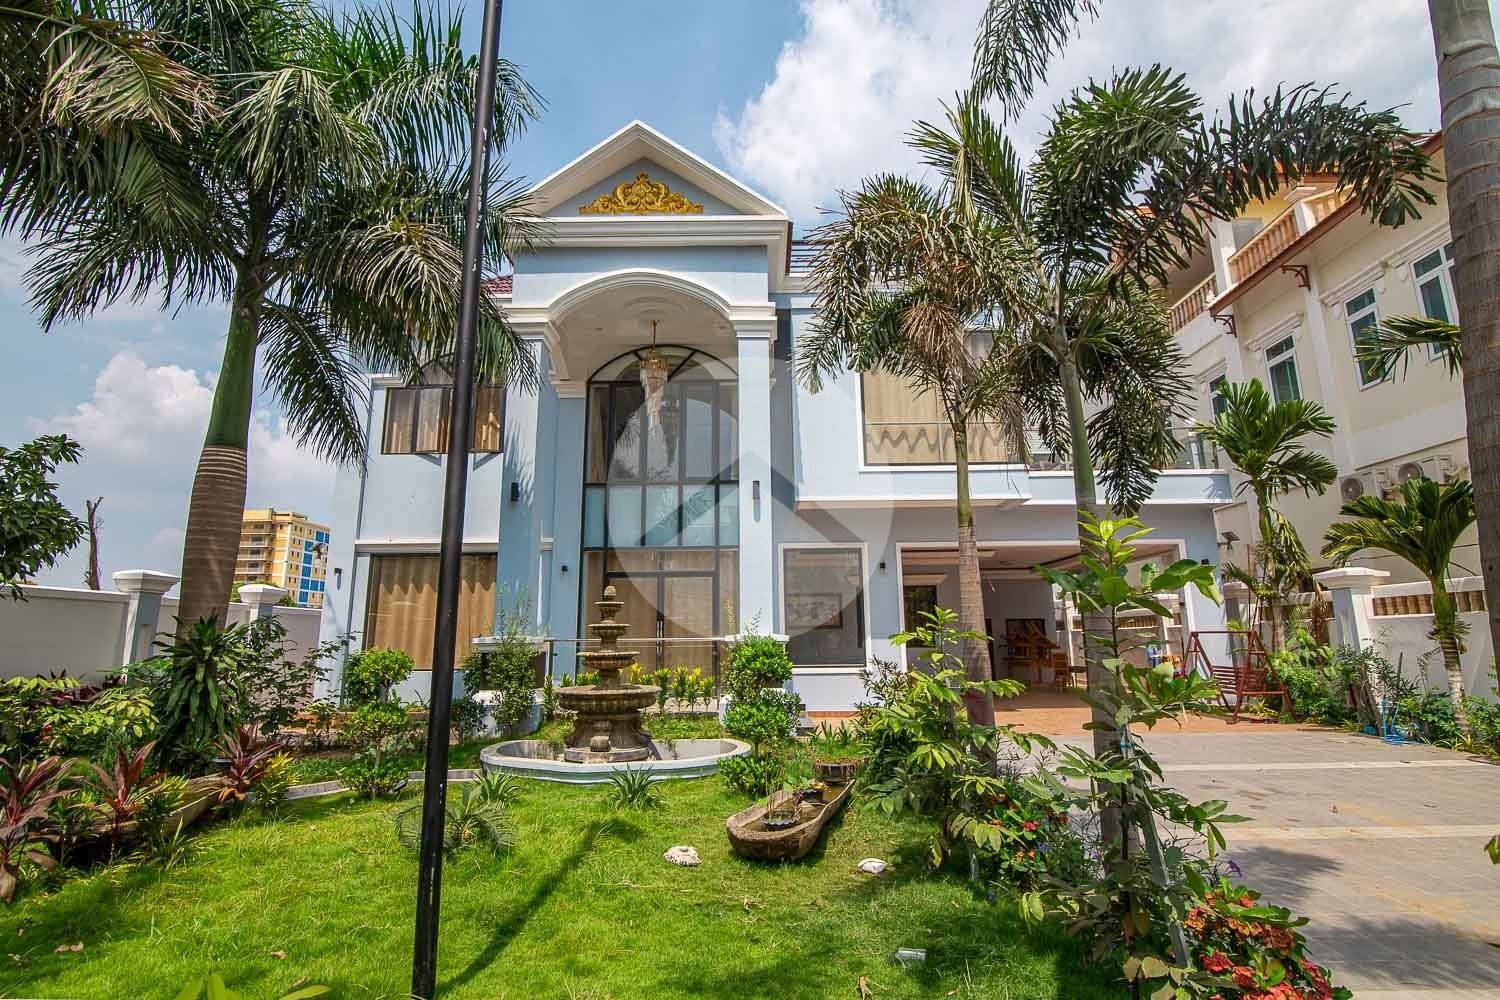 5 Bedroom Villa For Rent - Russey Keo, Phnom Penh